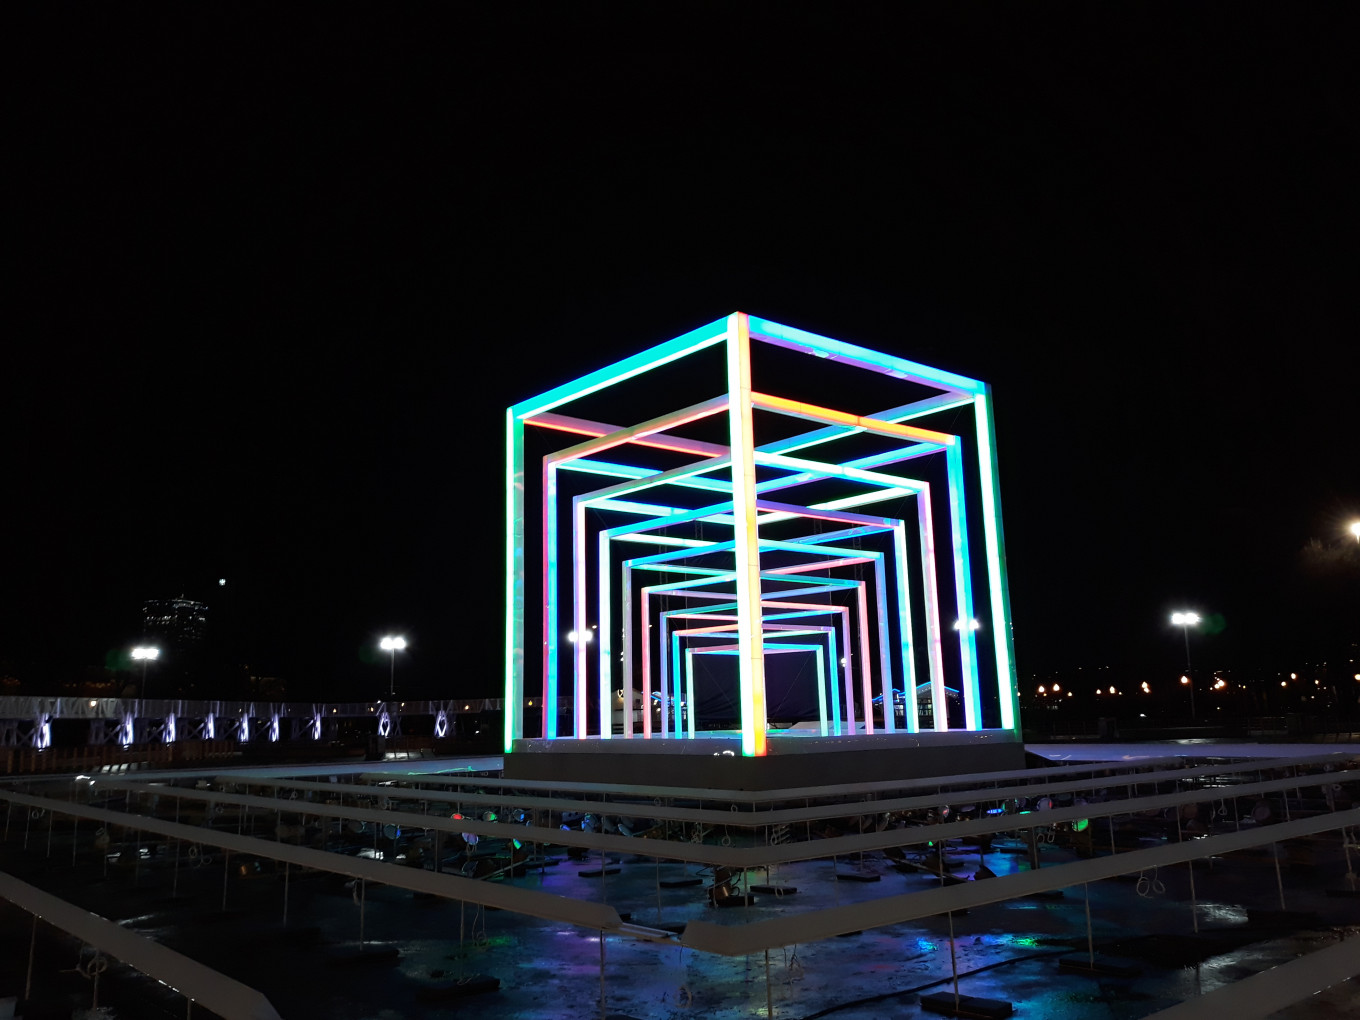 The cube of light and sound at the Gorky Park rink. Dmitry Vasin / MT